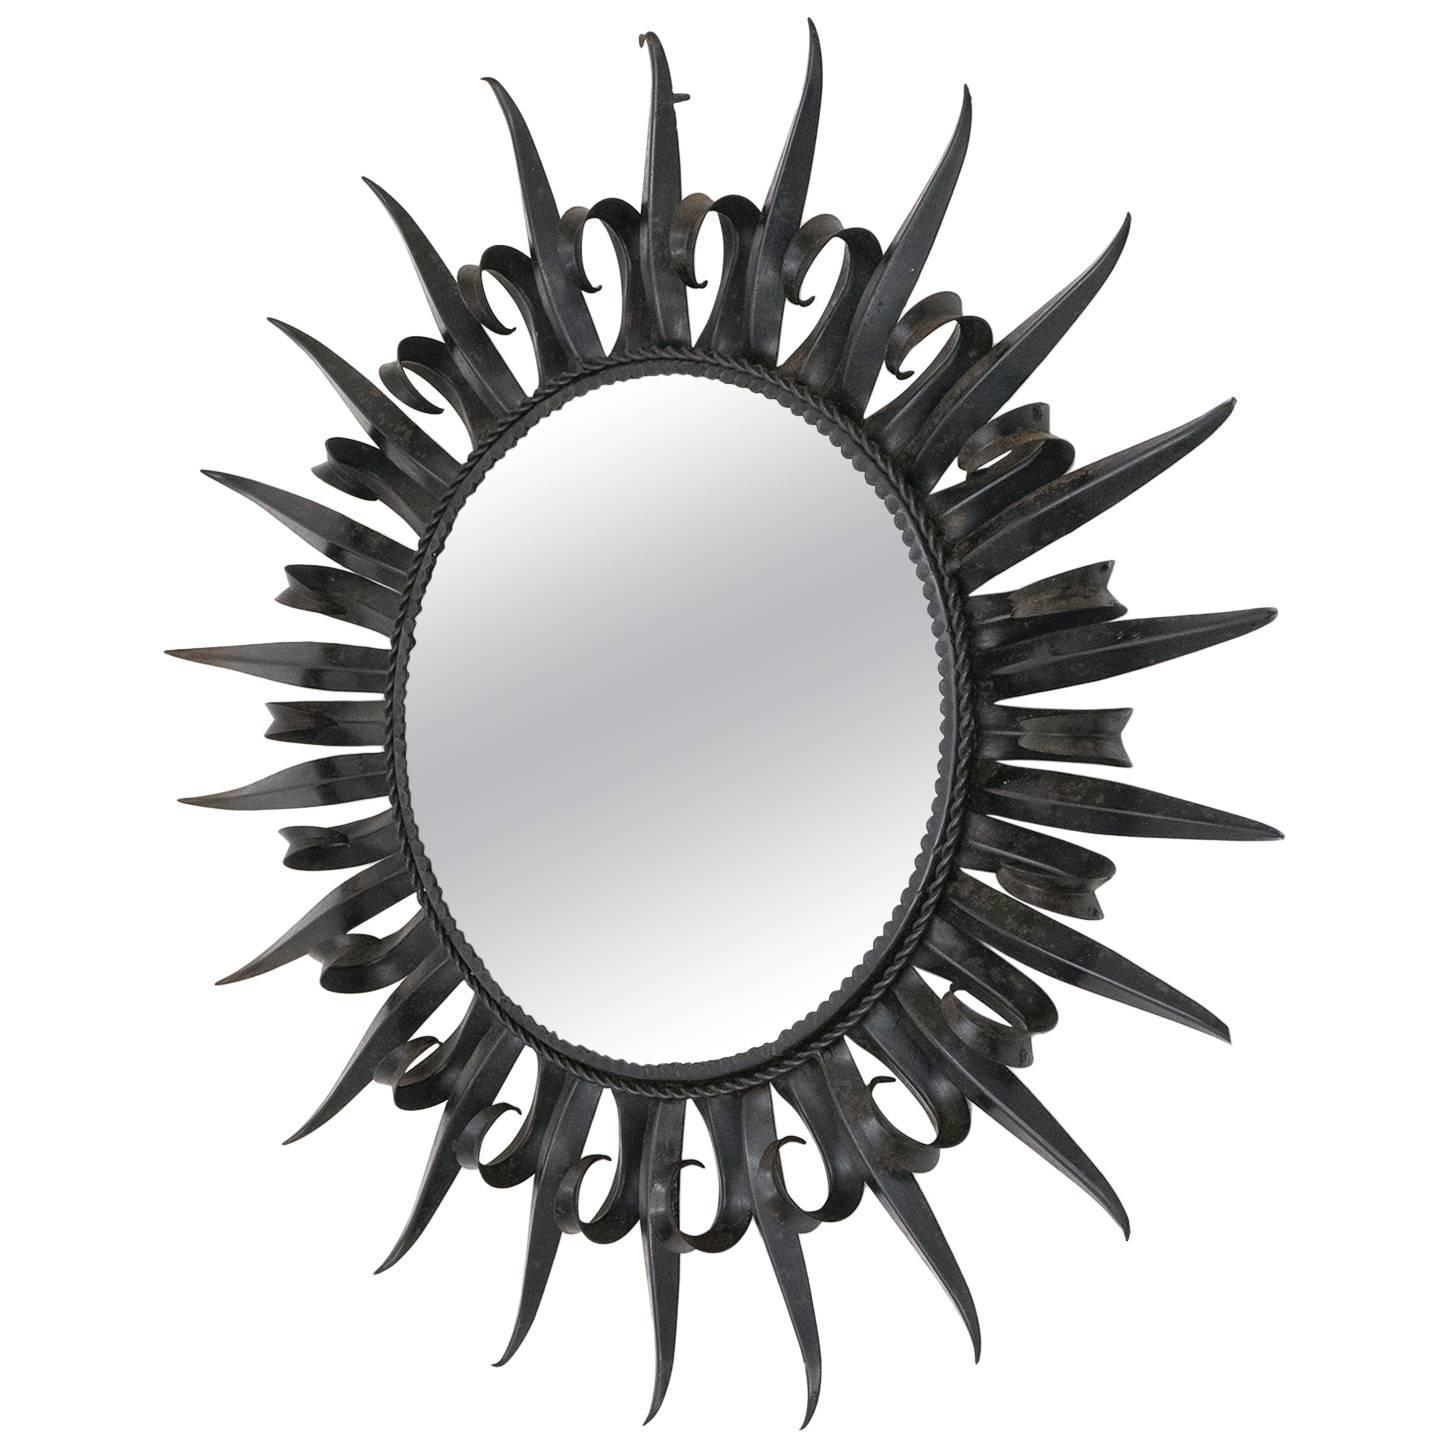 Wrought Iron Wall Mirrors - 72 For Sale at 1stdibs